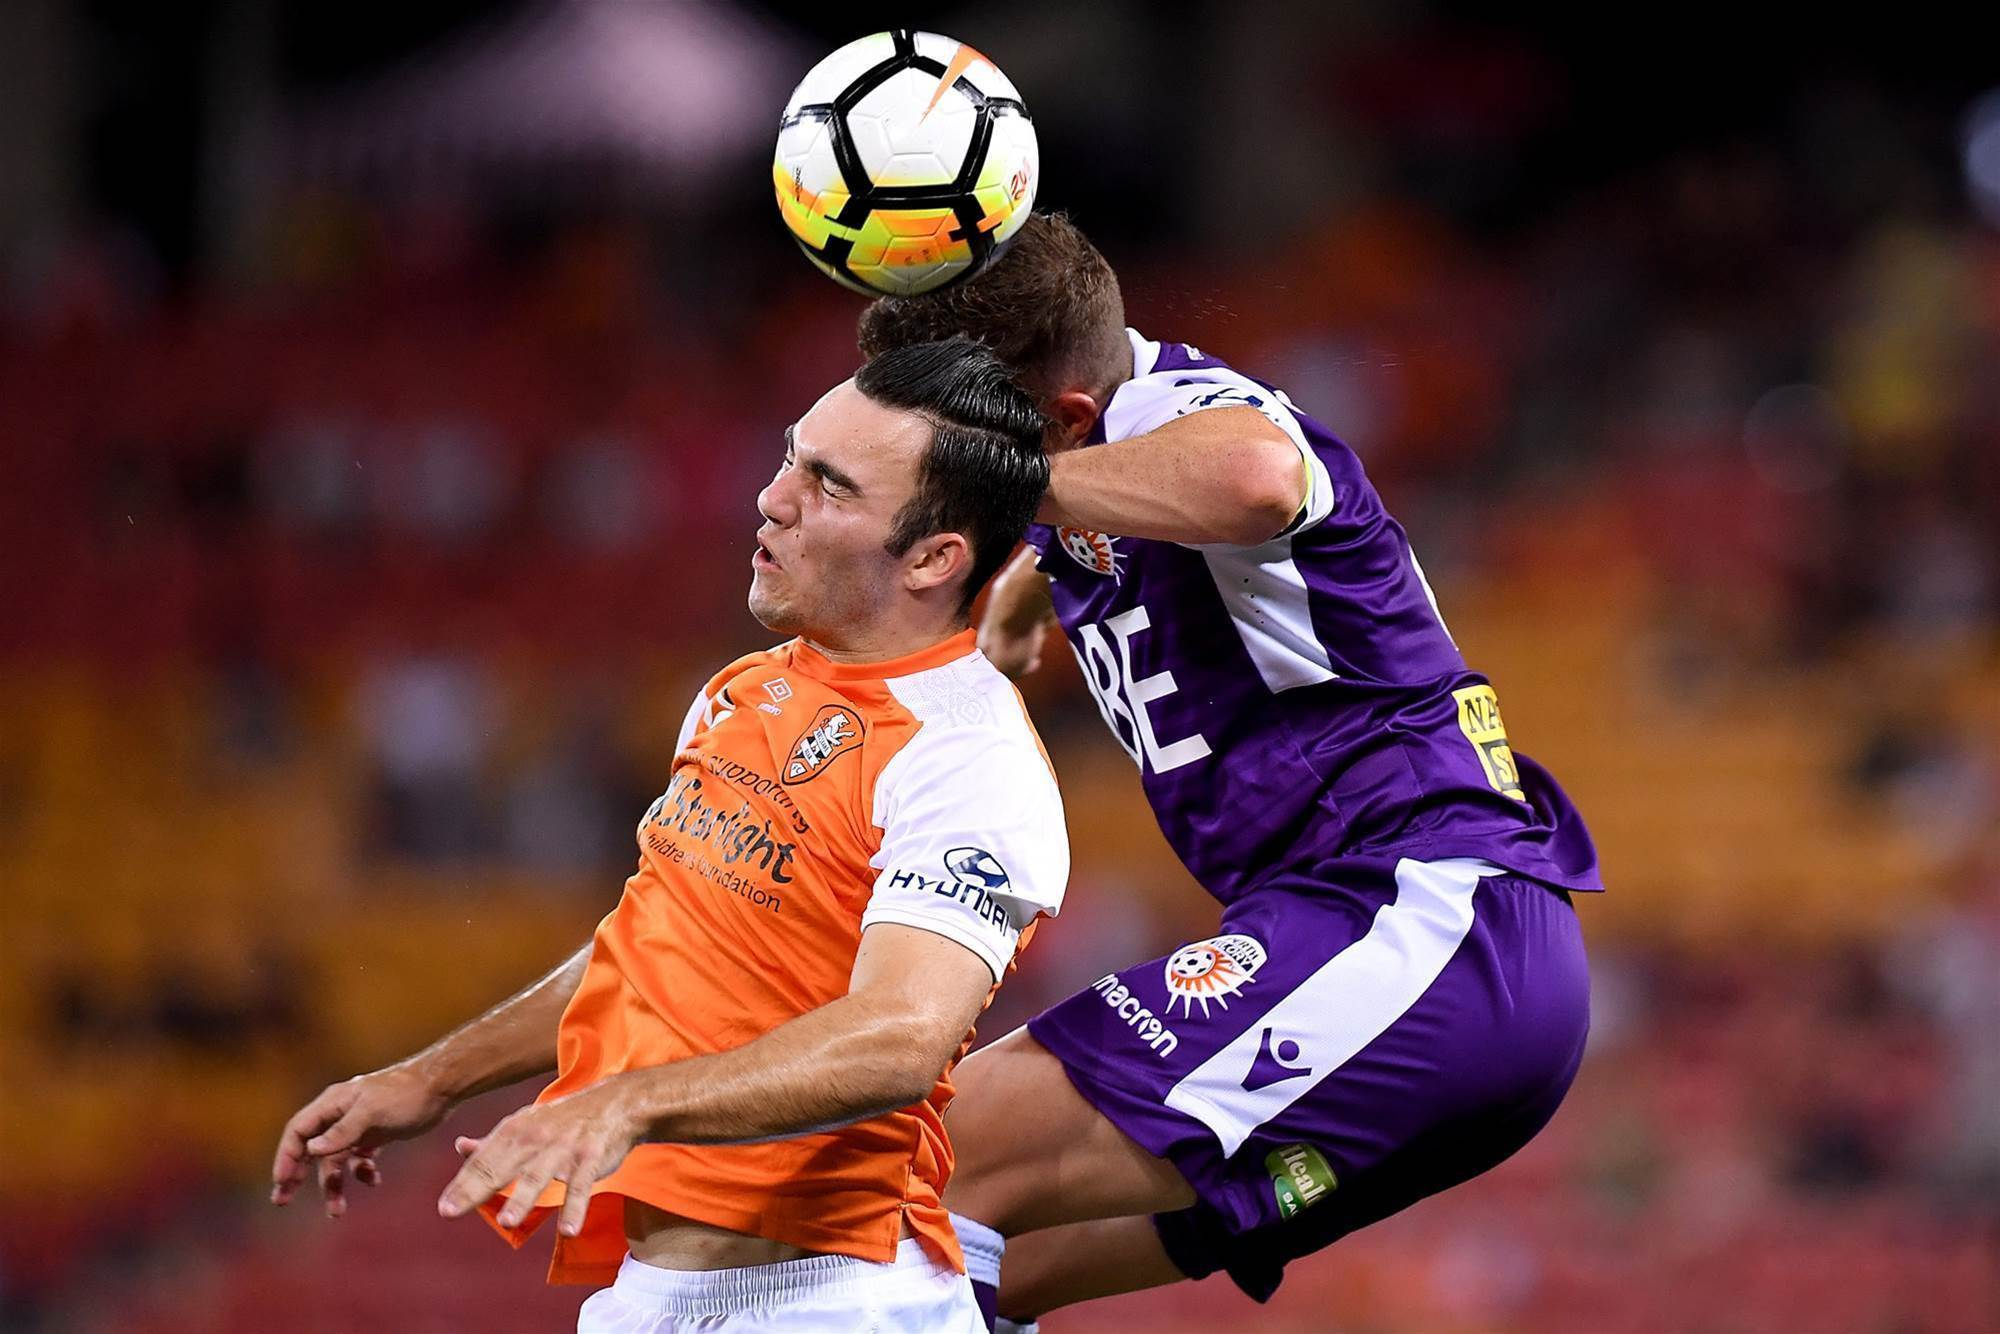 A-League festive football pics